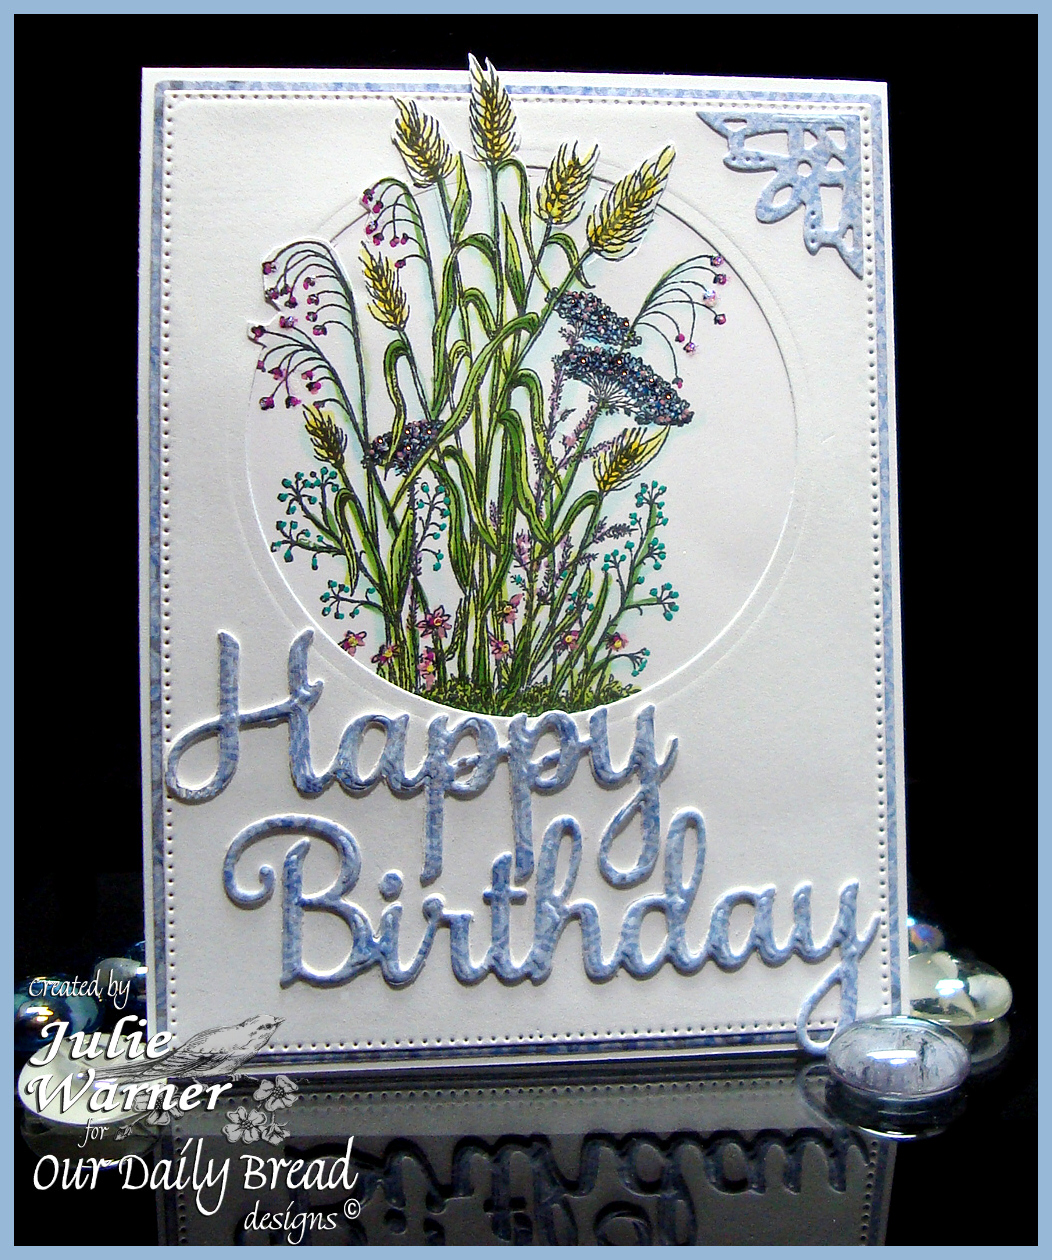 Stamps - Our Daily Bread Designs Life is a Gift, ODBD Christian Faith Paper Collection, ODBD Custom Happy Birthday Dies, Flourished Star Pattern Dies, Ornate Borders and Flower Dies